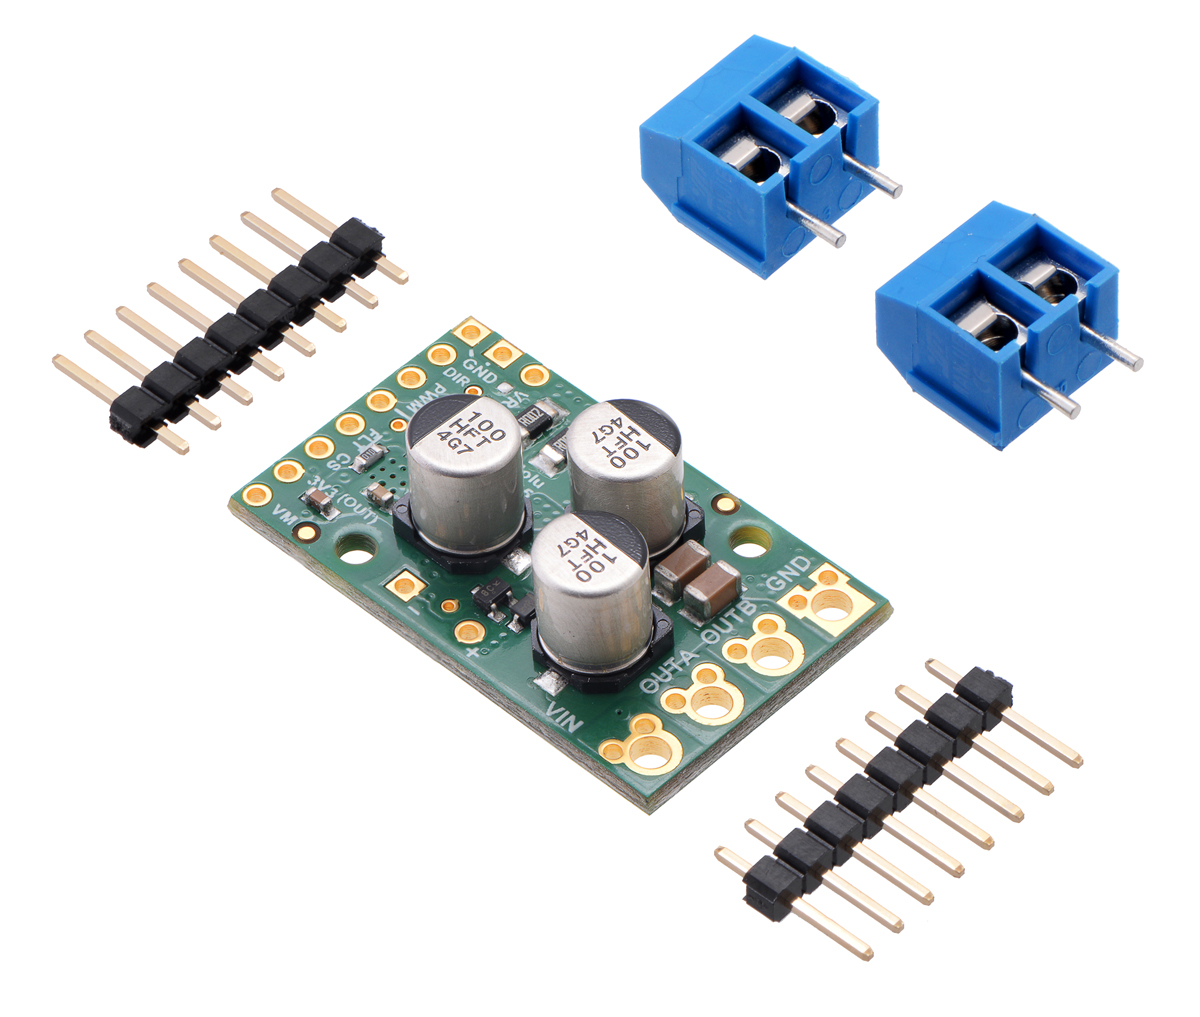 Pololu G2 High Power Motor Driver 18v25 The Series Pwm Controller With Forward And Reverse Above Can Or 24v21 Included Hardware